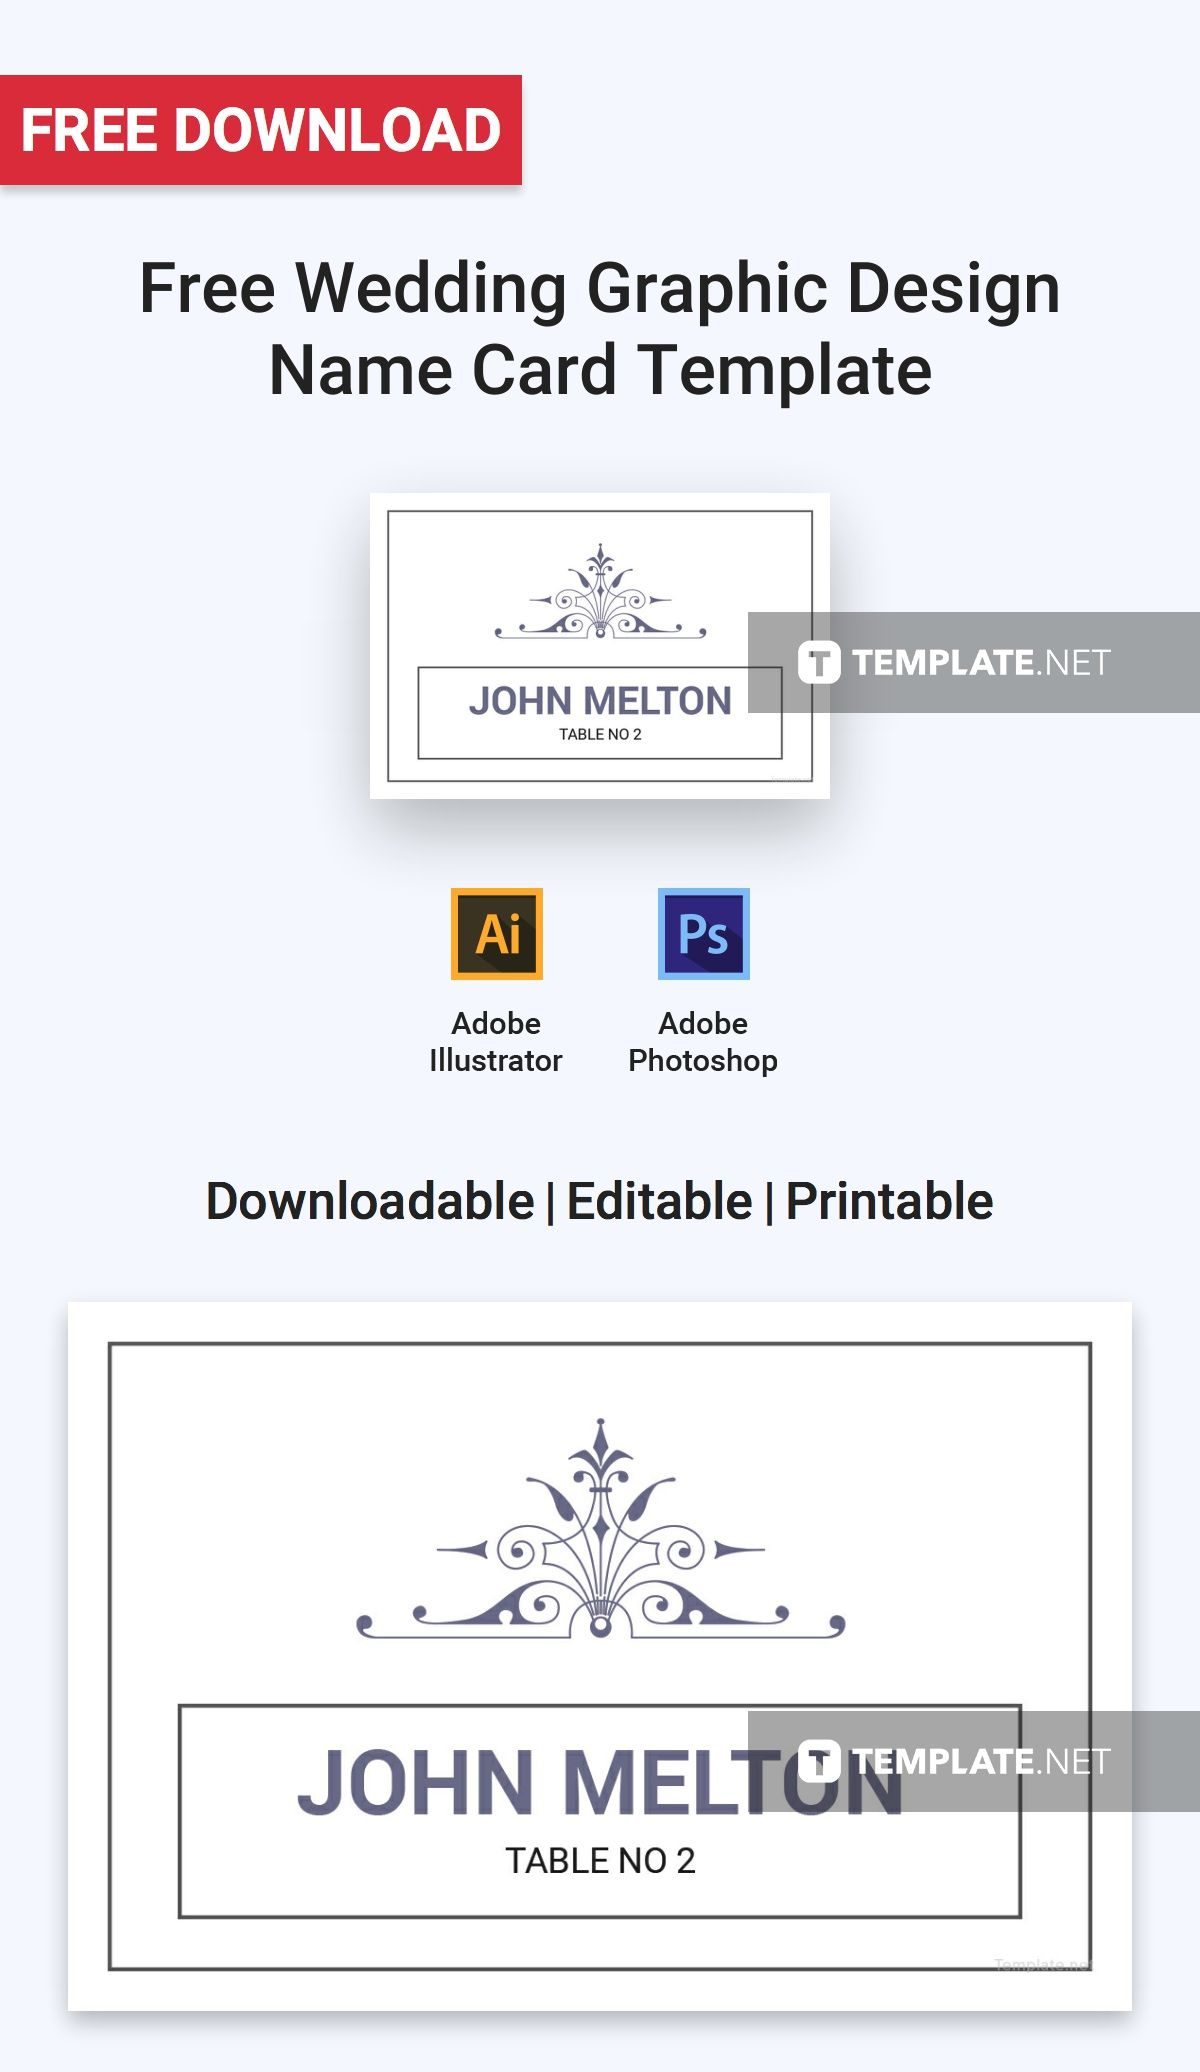 free wedding graphic design name card in 2018 free card templates pinterest free wedding card templates and wedding designs